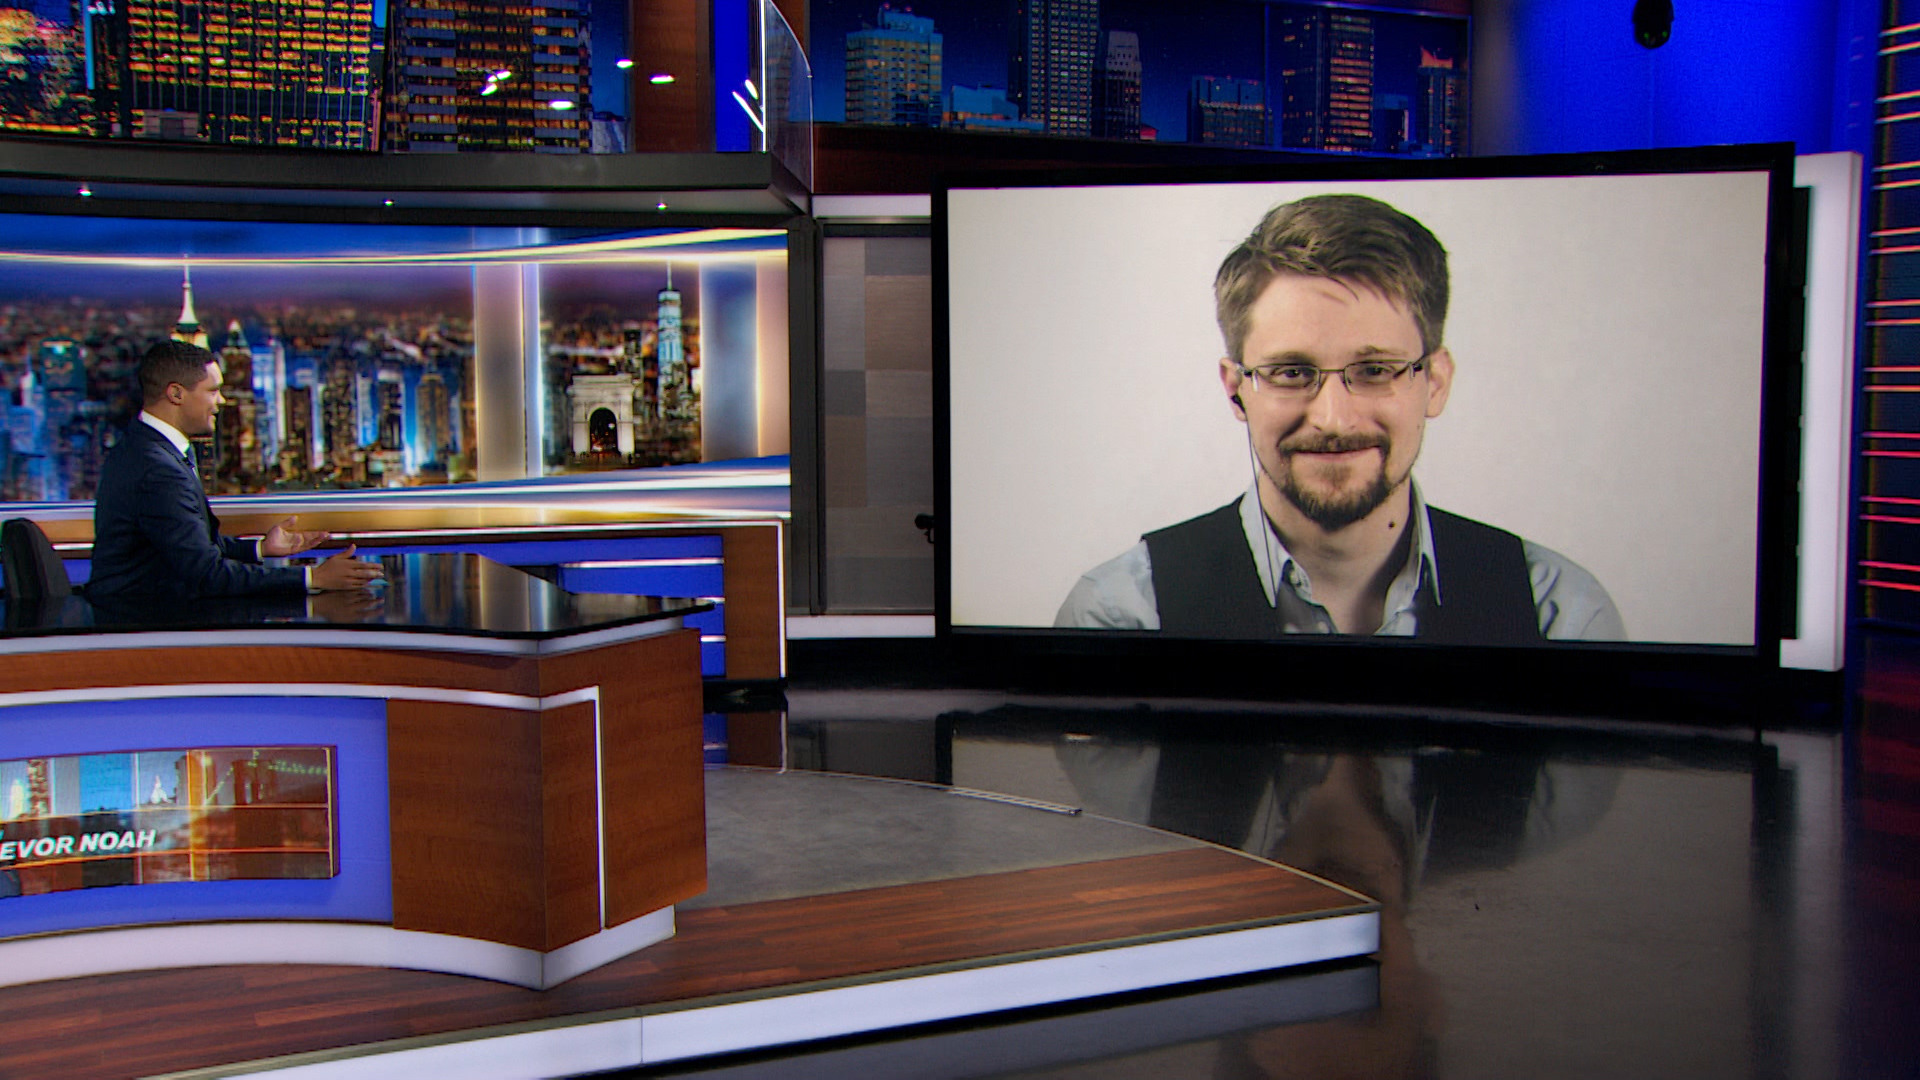 Extended - September 19, 2019 - Edward Snowden